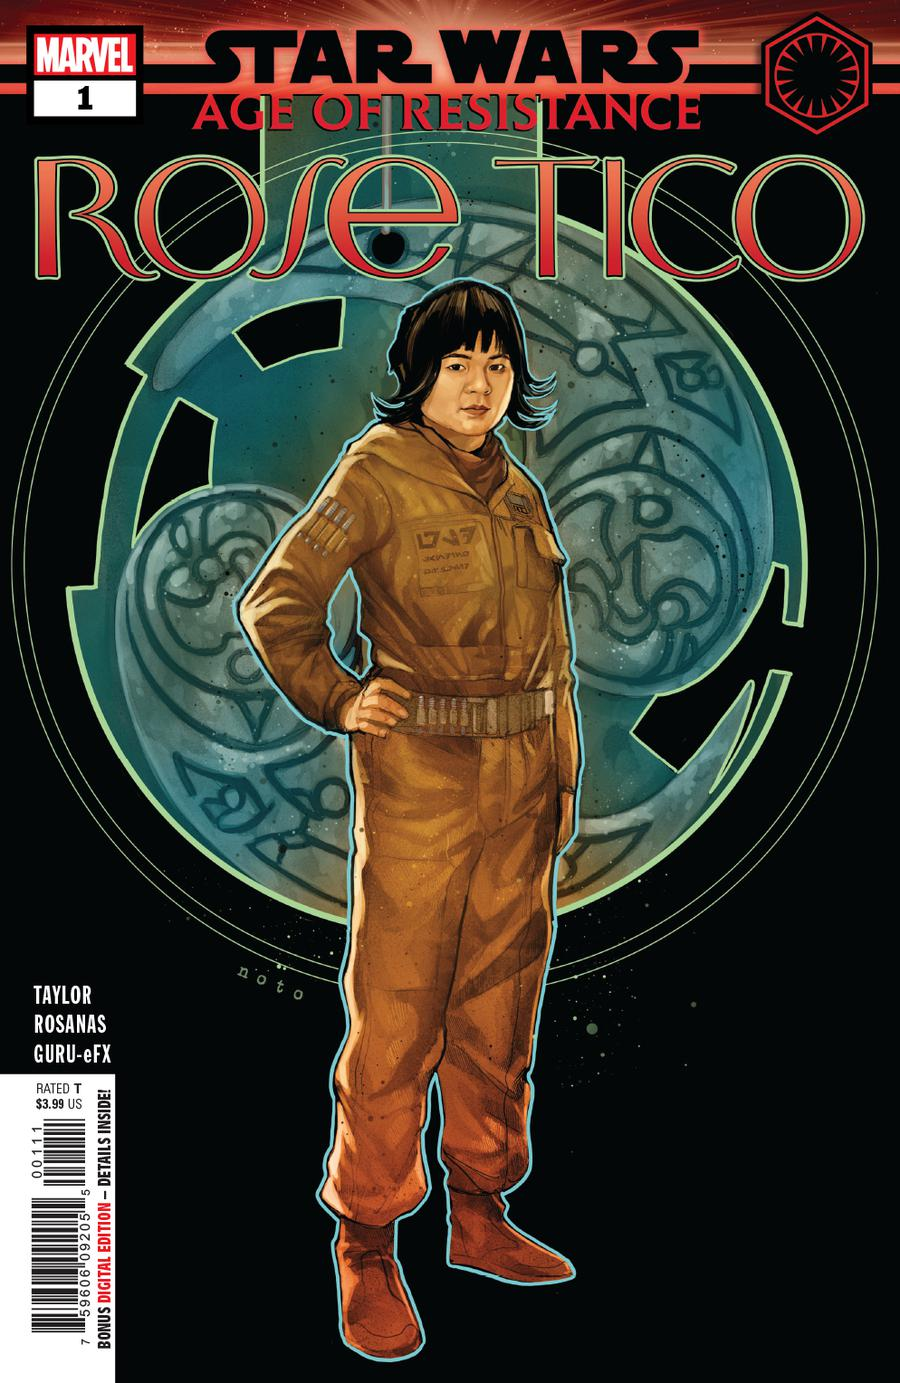 Star Wars Age Of Resistance Rose Tico #1 Cover A Regular Phil Noto Cover